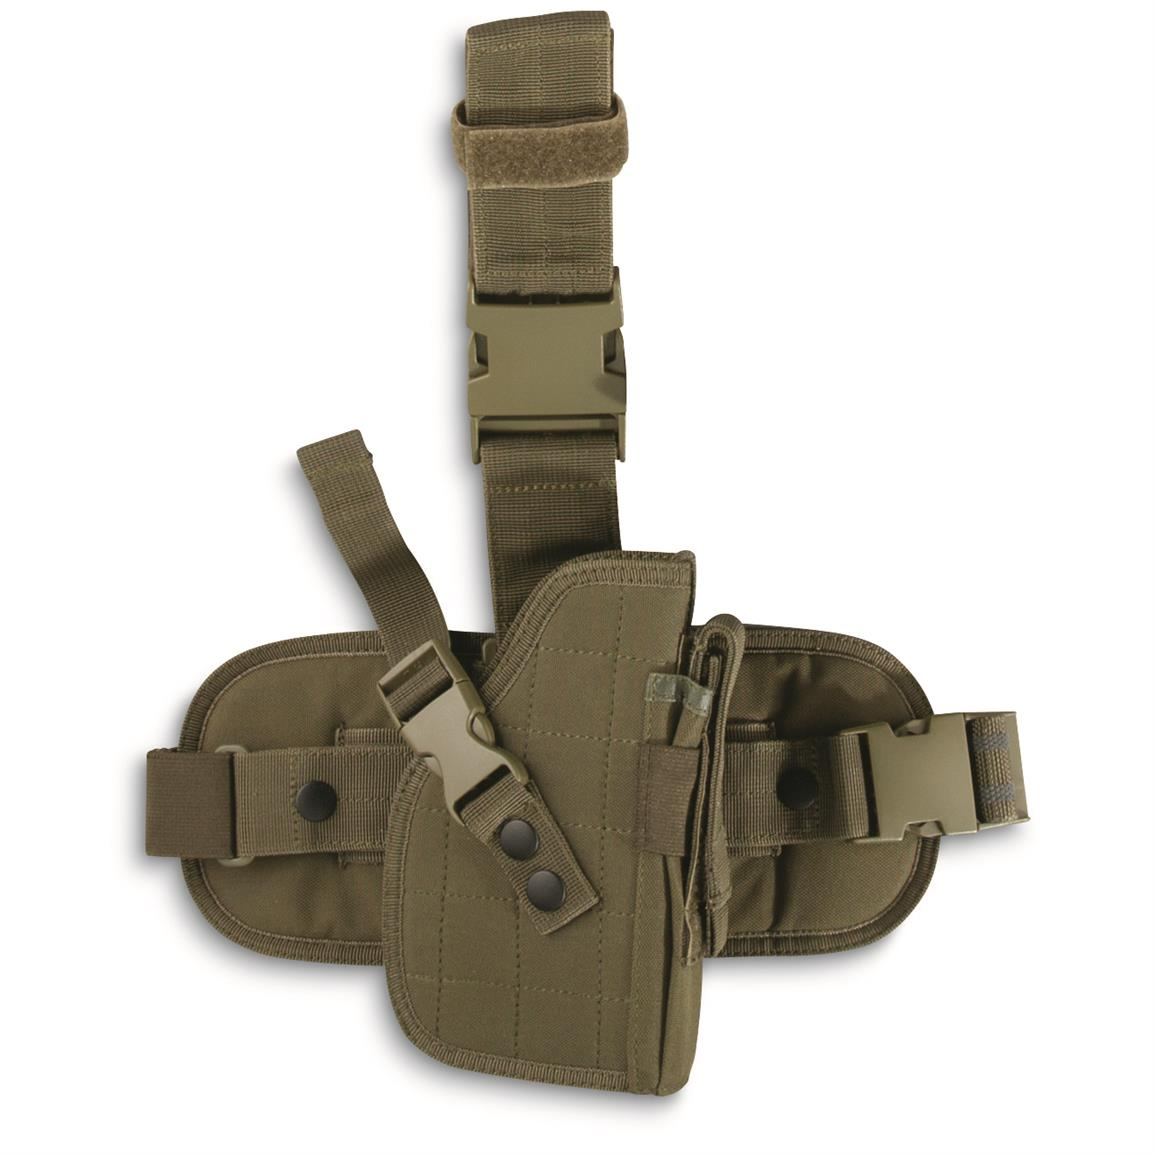 Fox Outdoors Military-Style Drop Leg Holster, Olive Drab